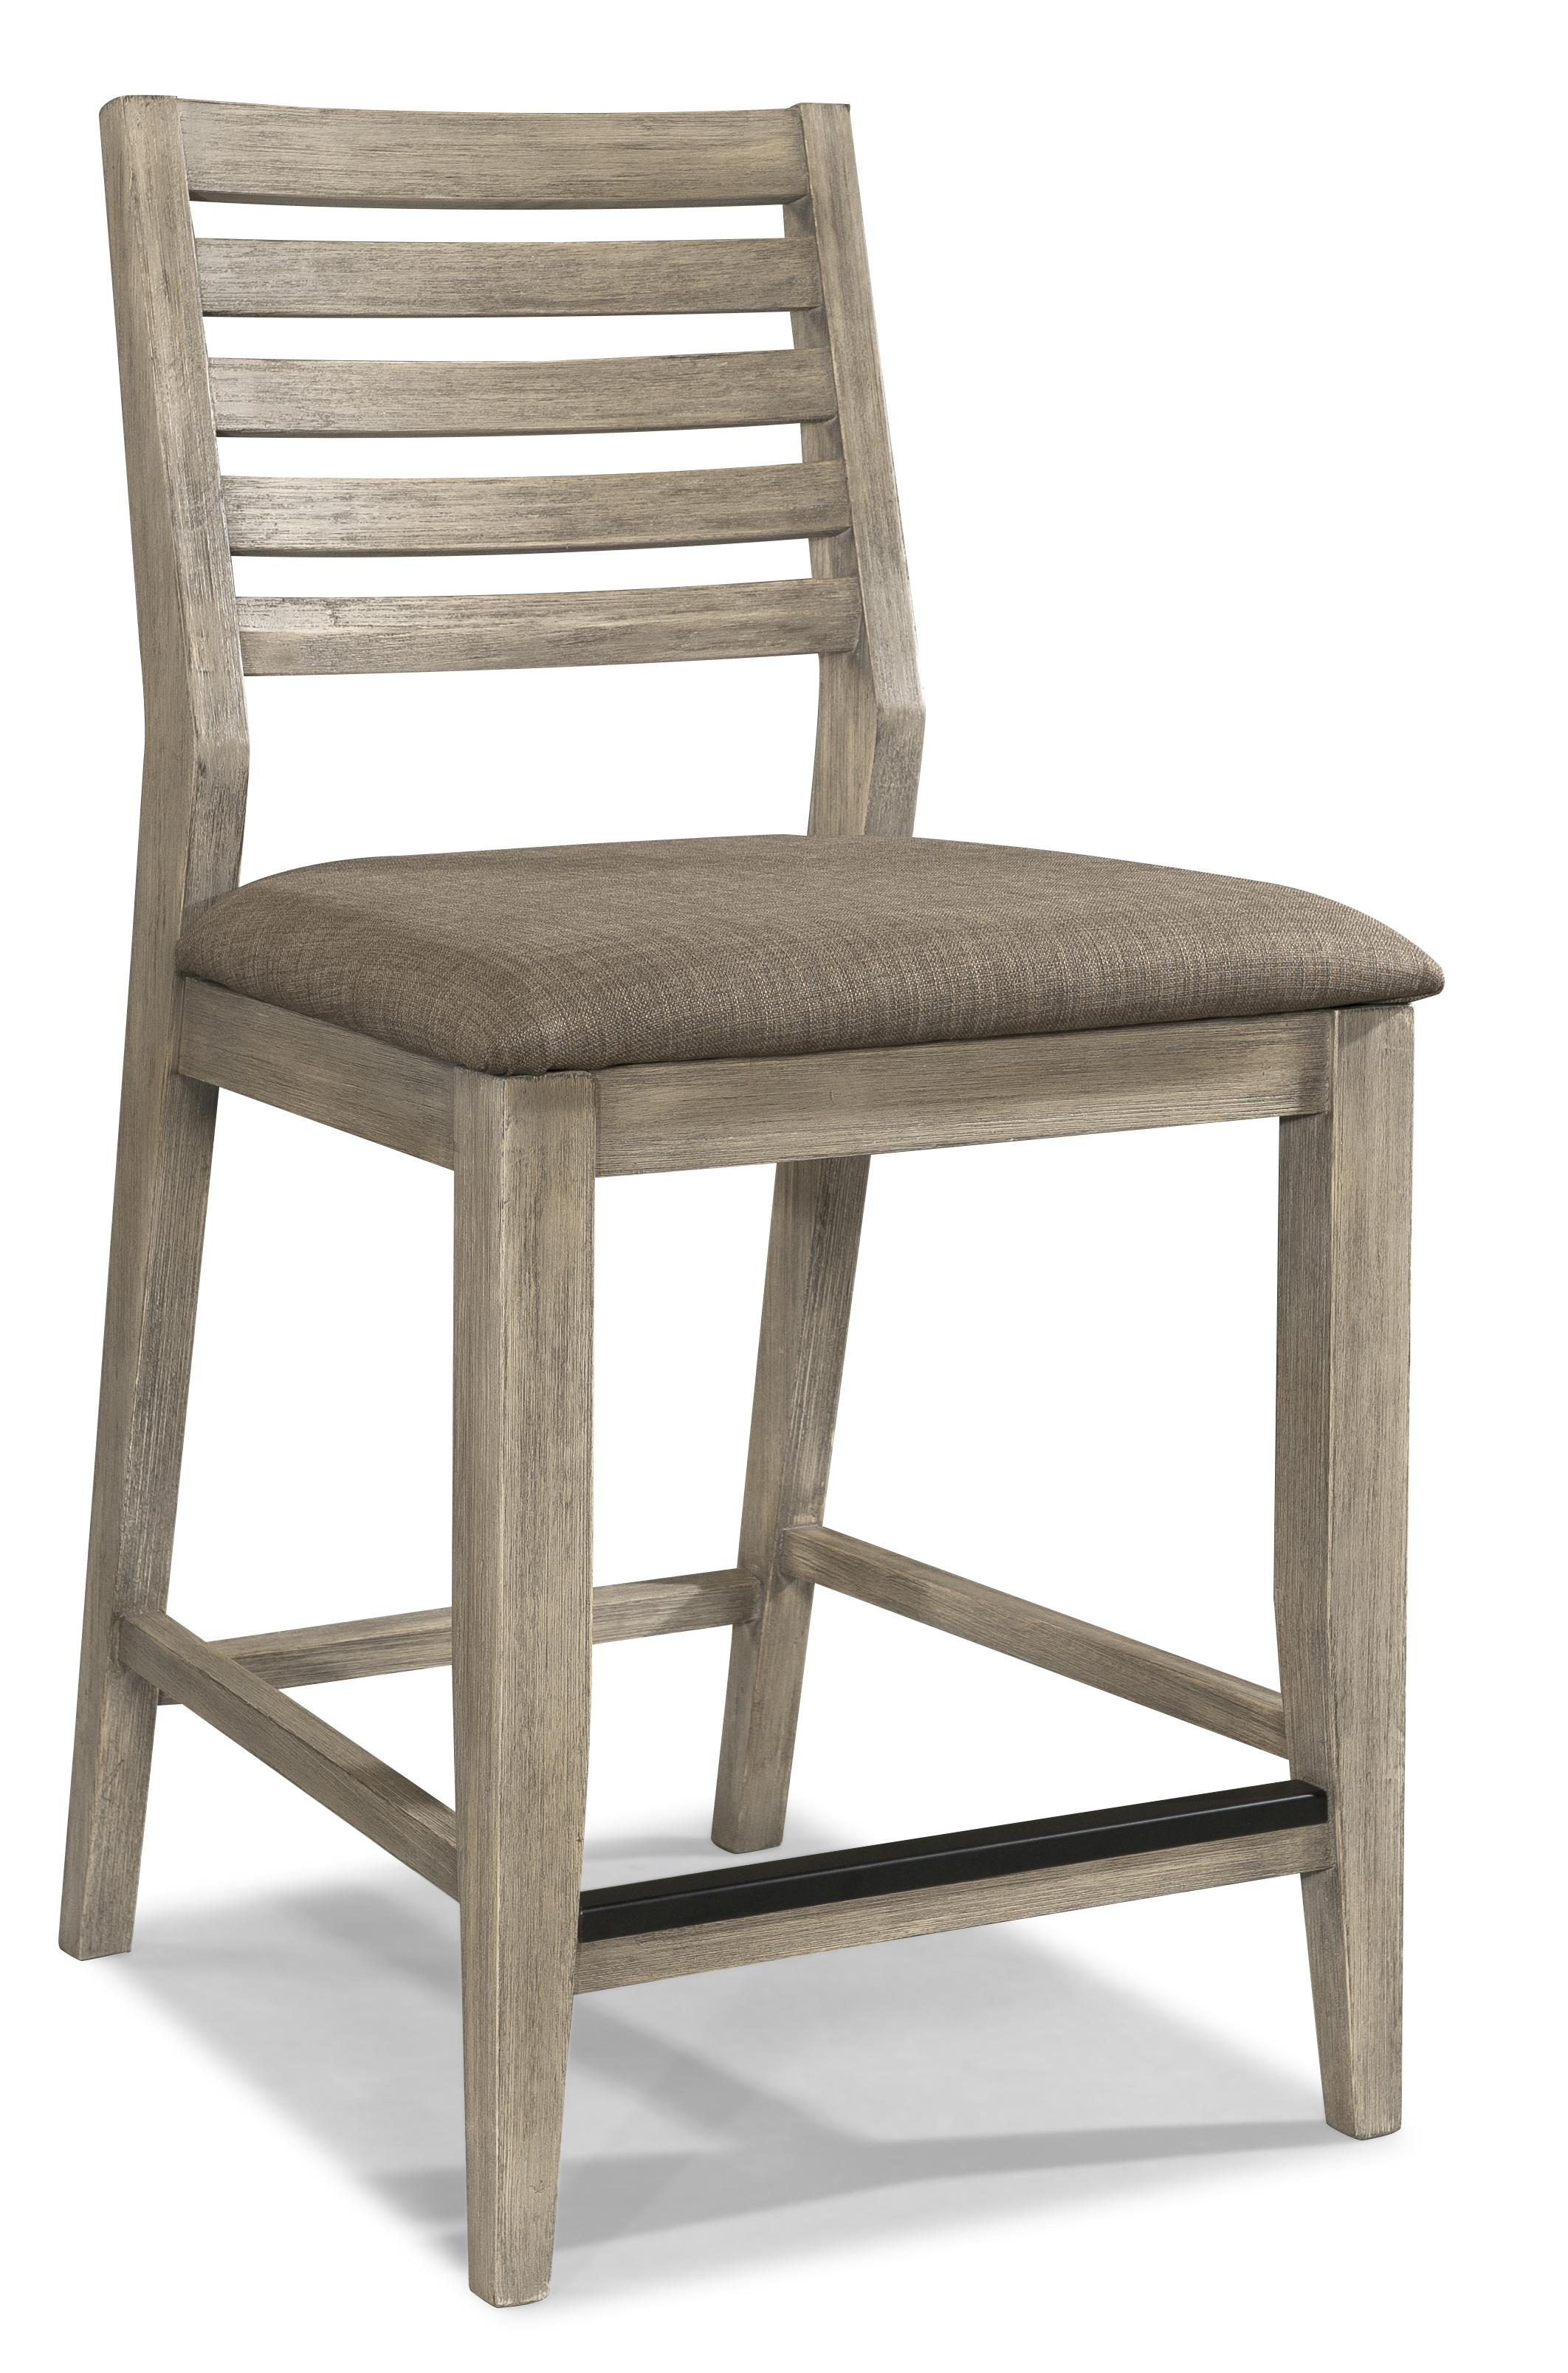 Cresent Fine Furniture Corliss Landing Counter Stool - Item Number: 5668